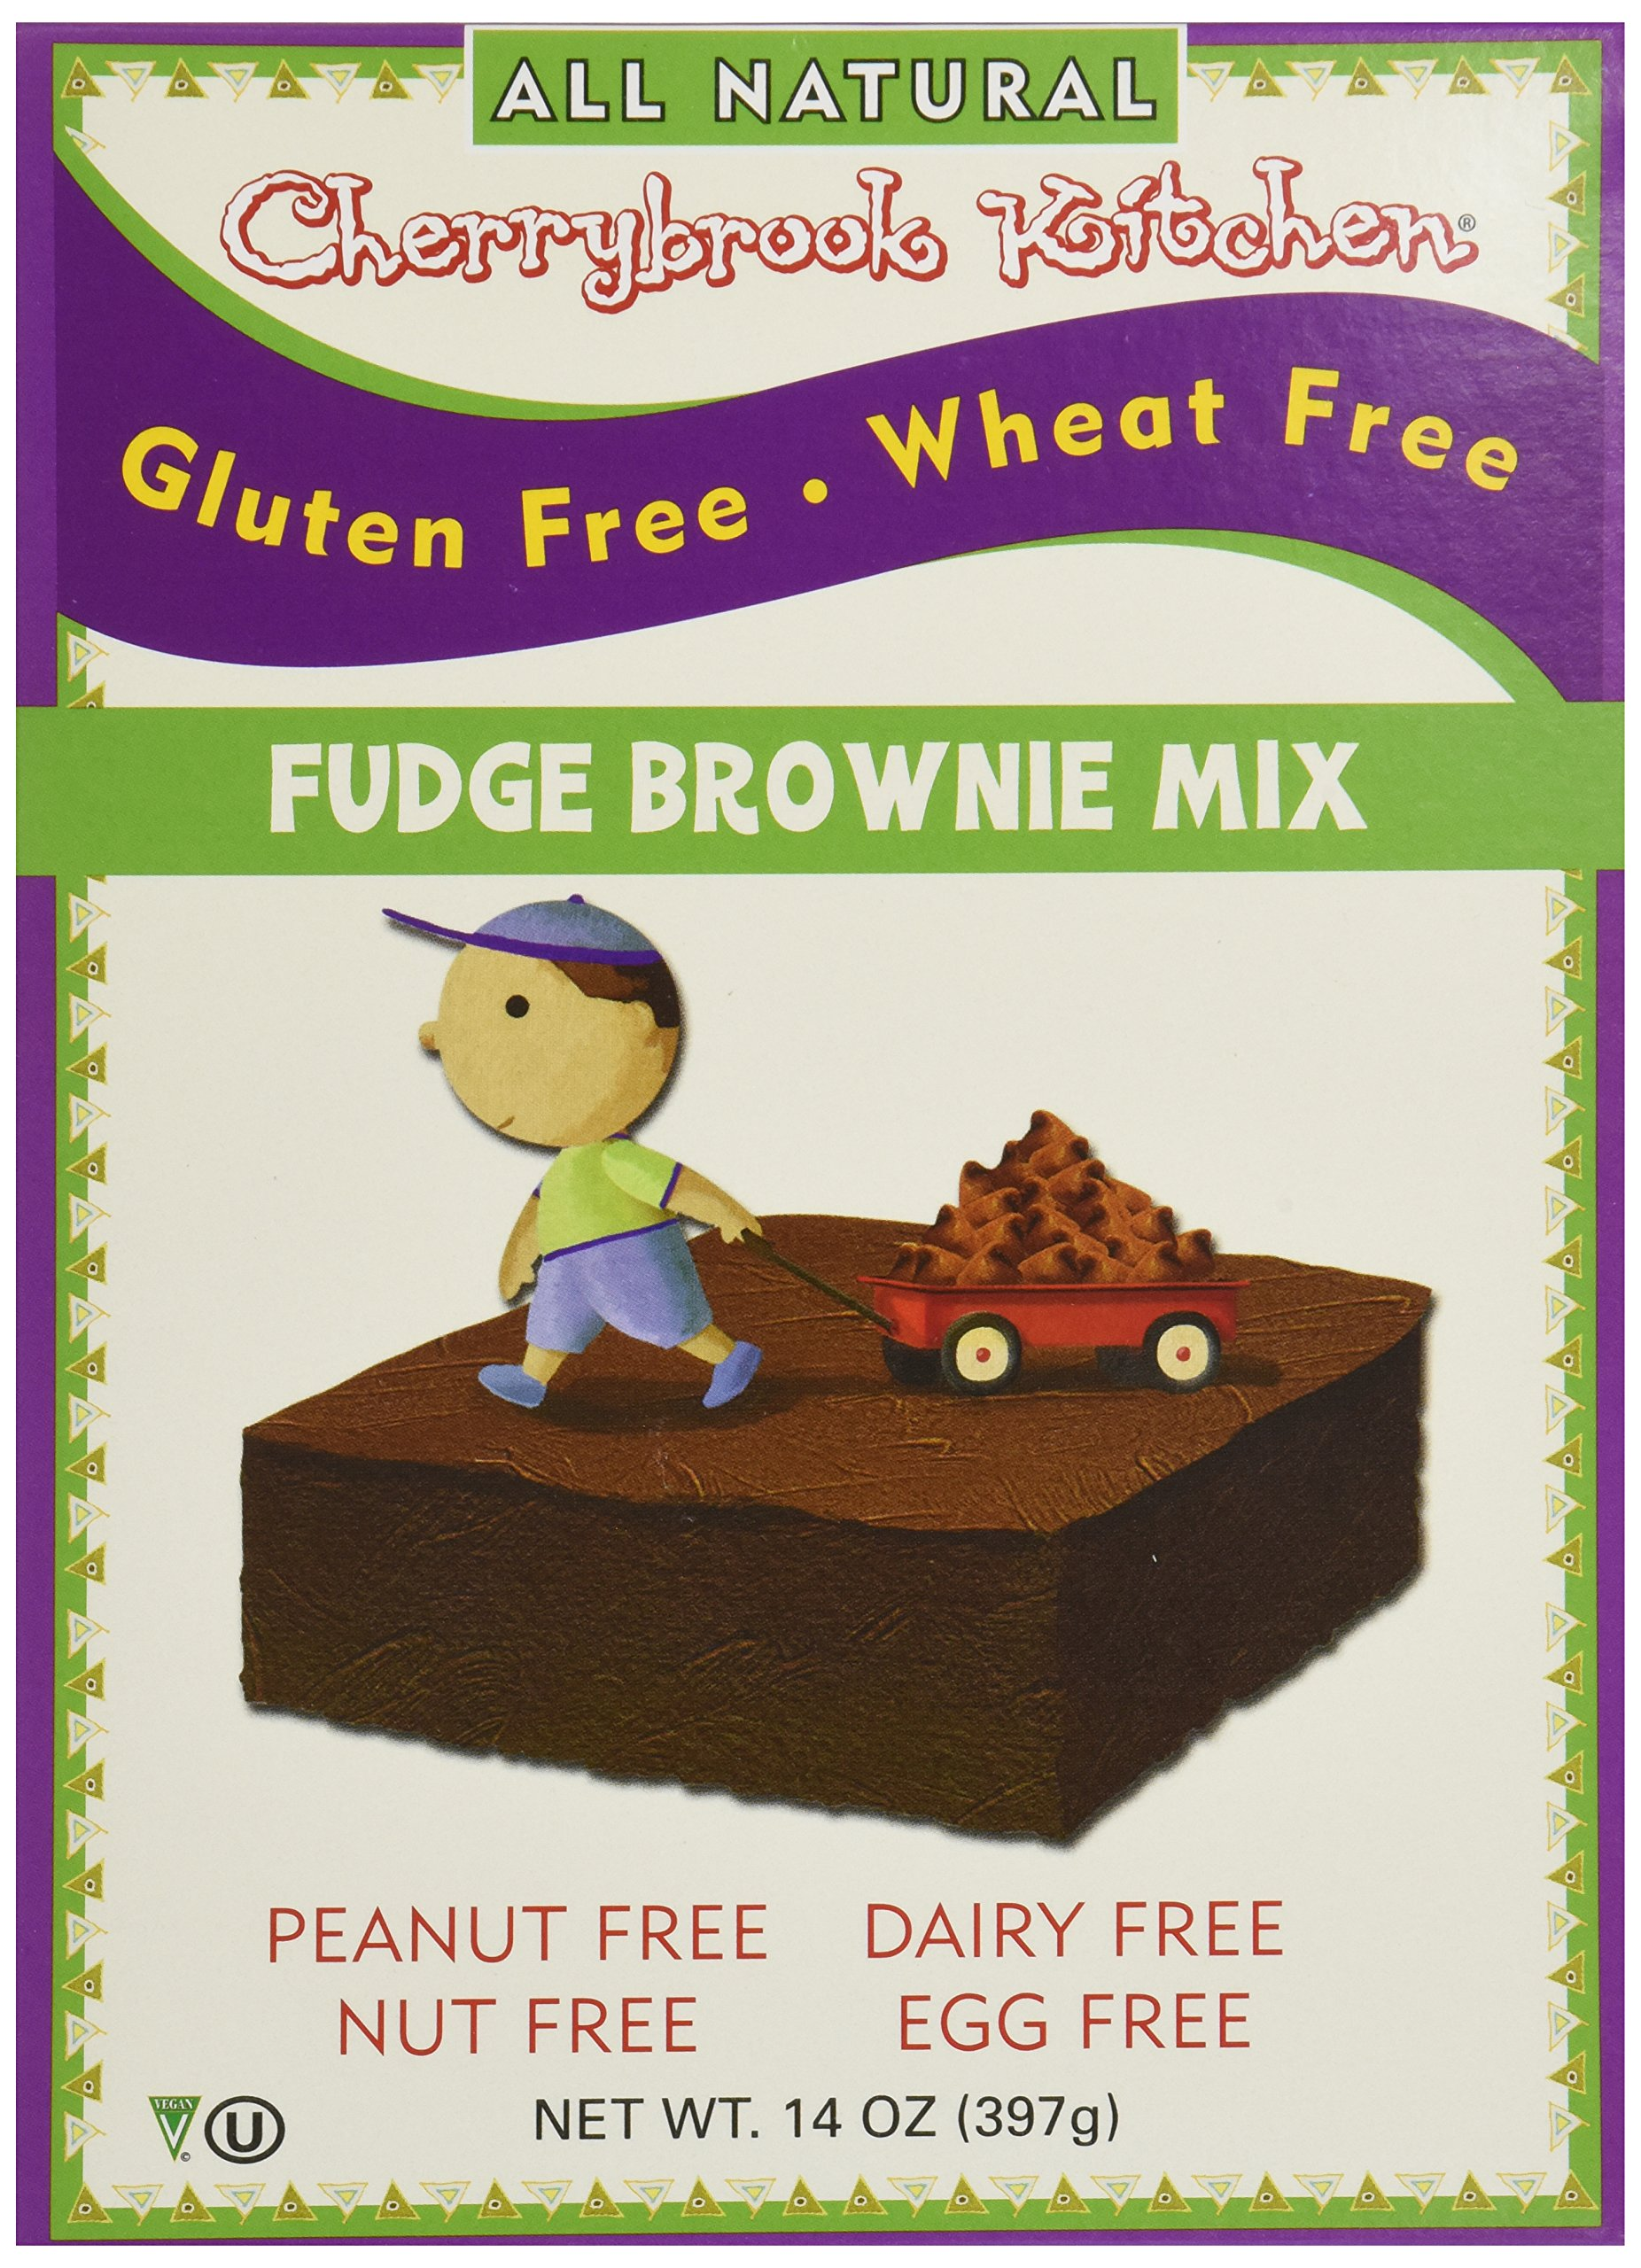 Cherrybrook Kitchen Gluten Free Dreams Fudge Brownie Mix 14 oz 397 g by Cherrybrook Kitchen